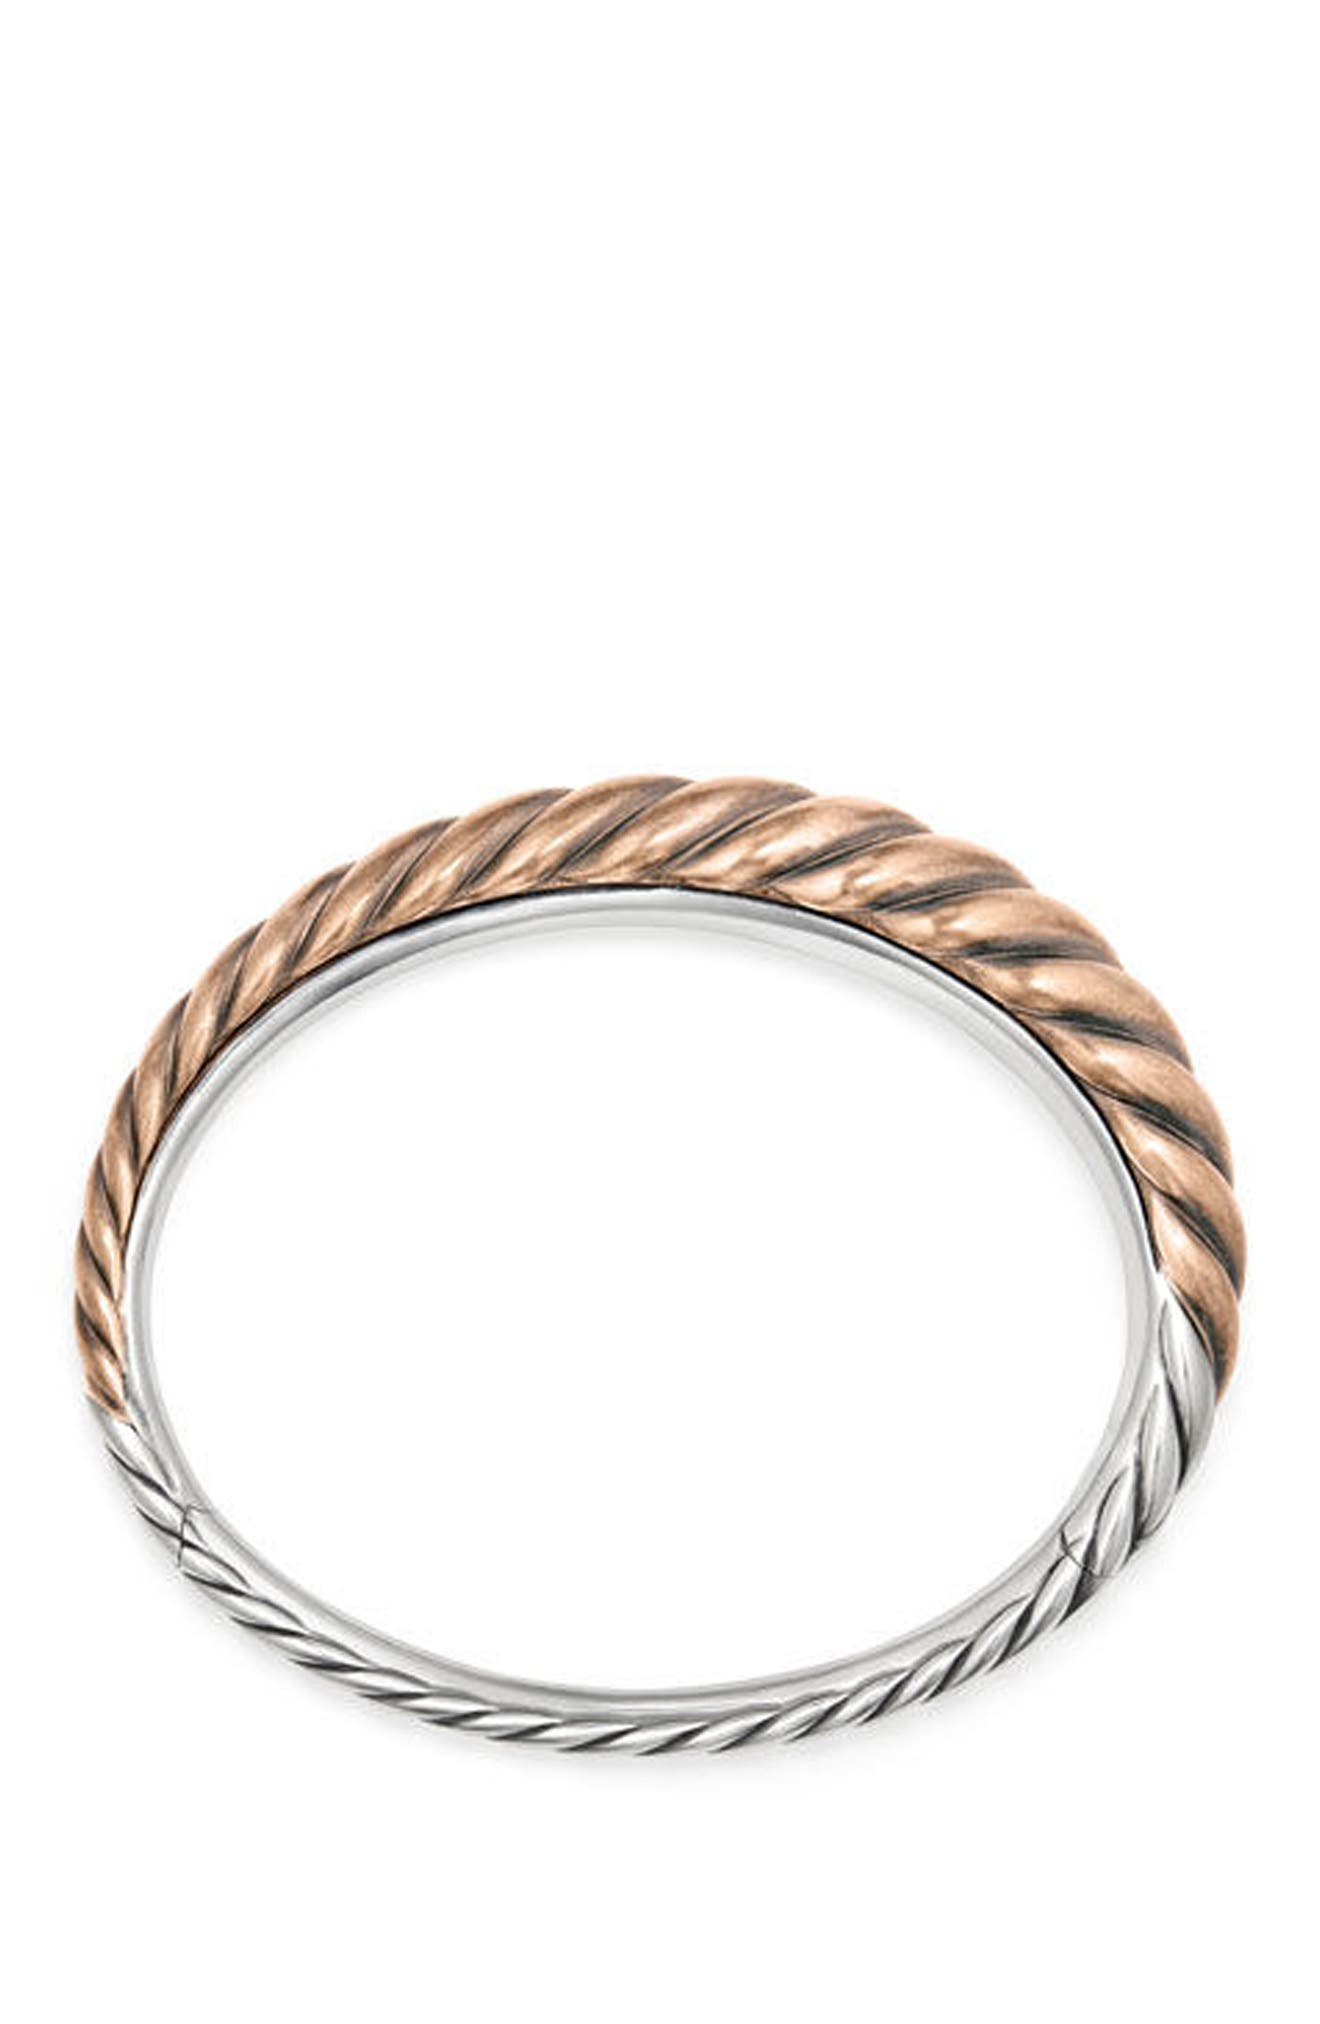 Pure Form Mixed Metal Cable Bracelet with Bronze and Silver, 9.5mm,                             Alternate thumbnail 3, color,                             SILVER